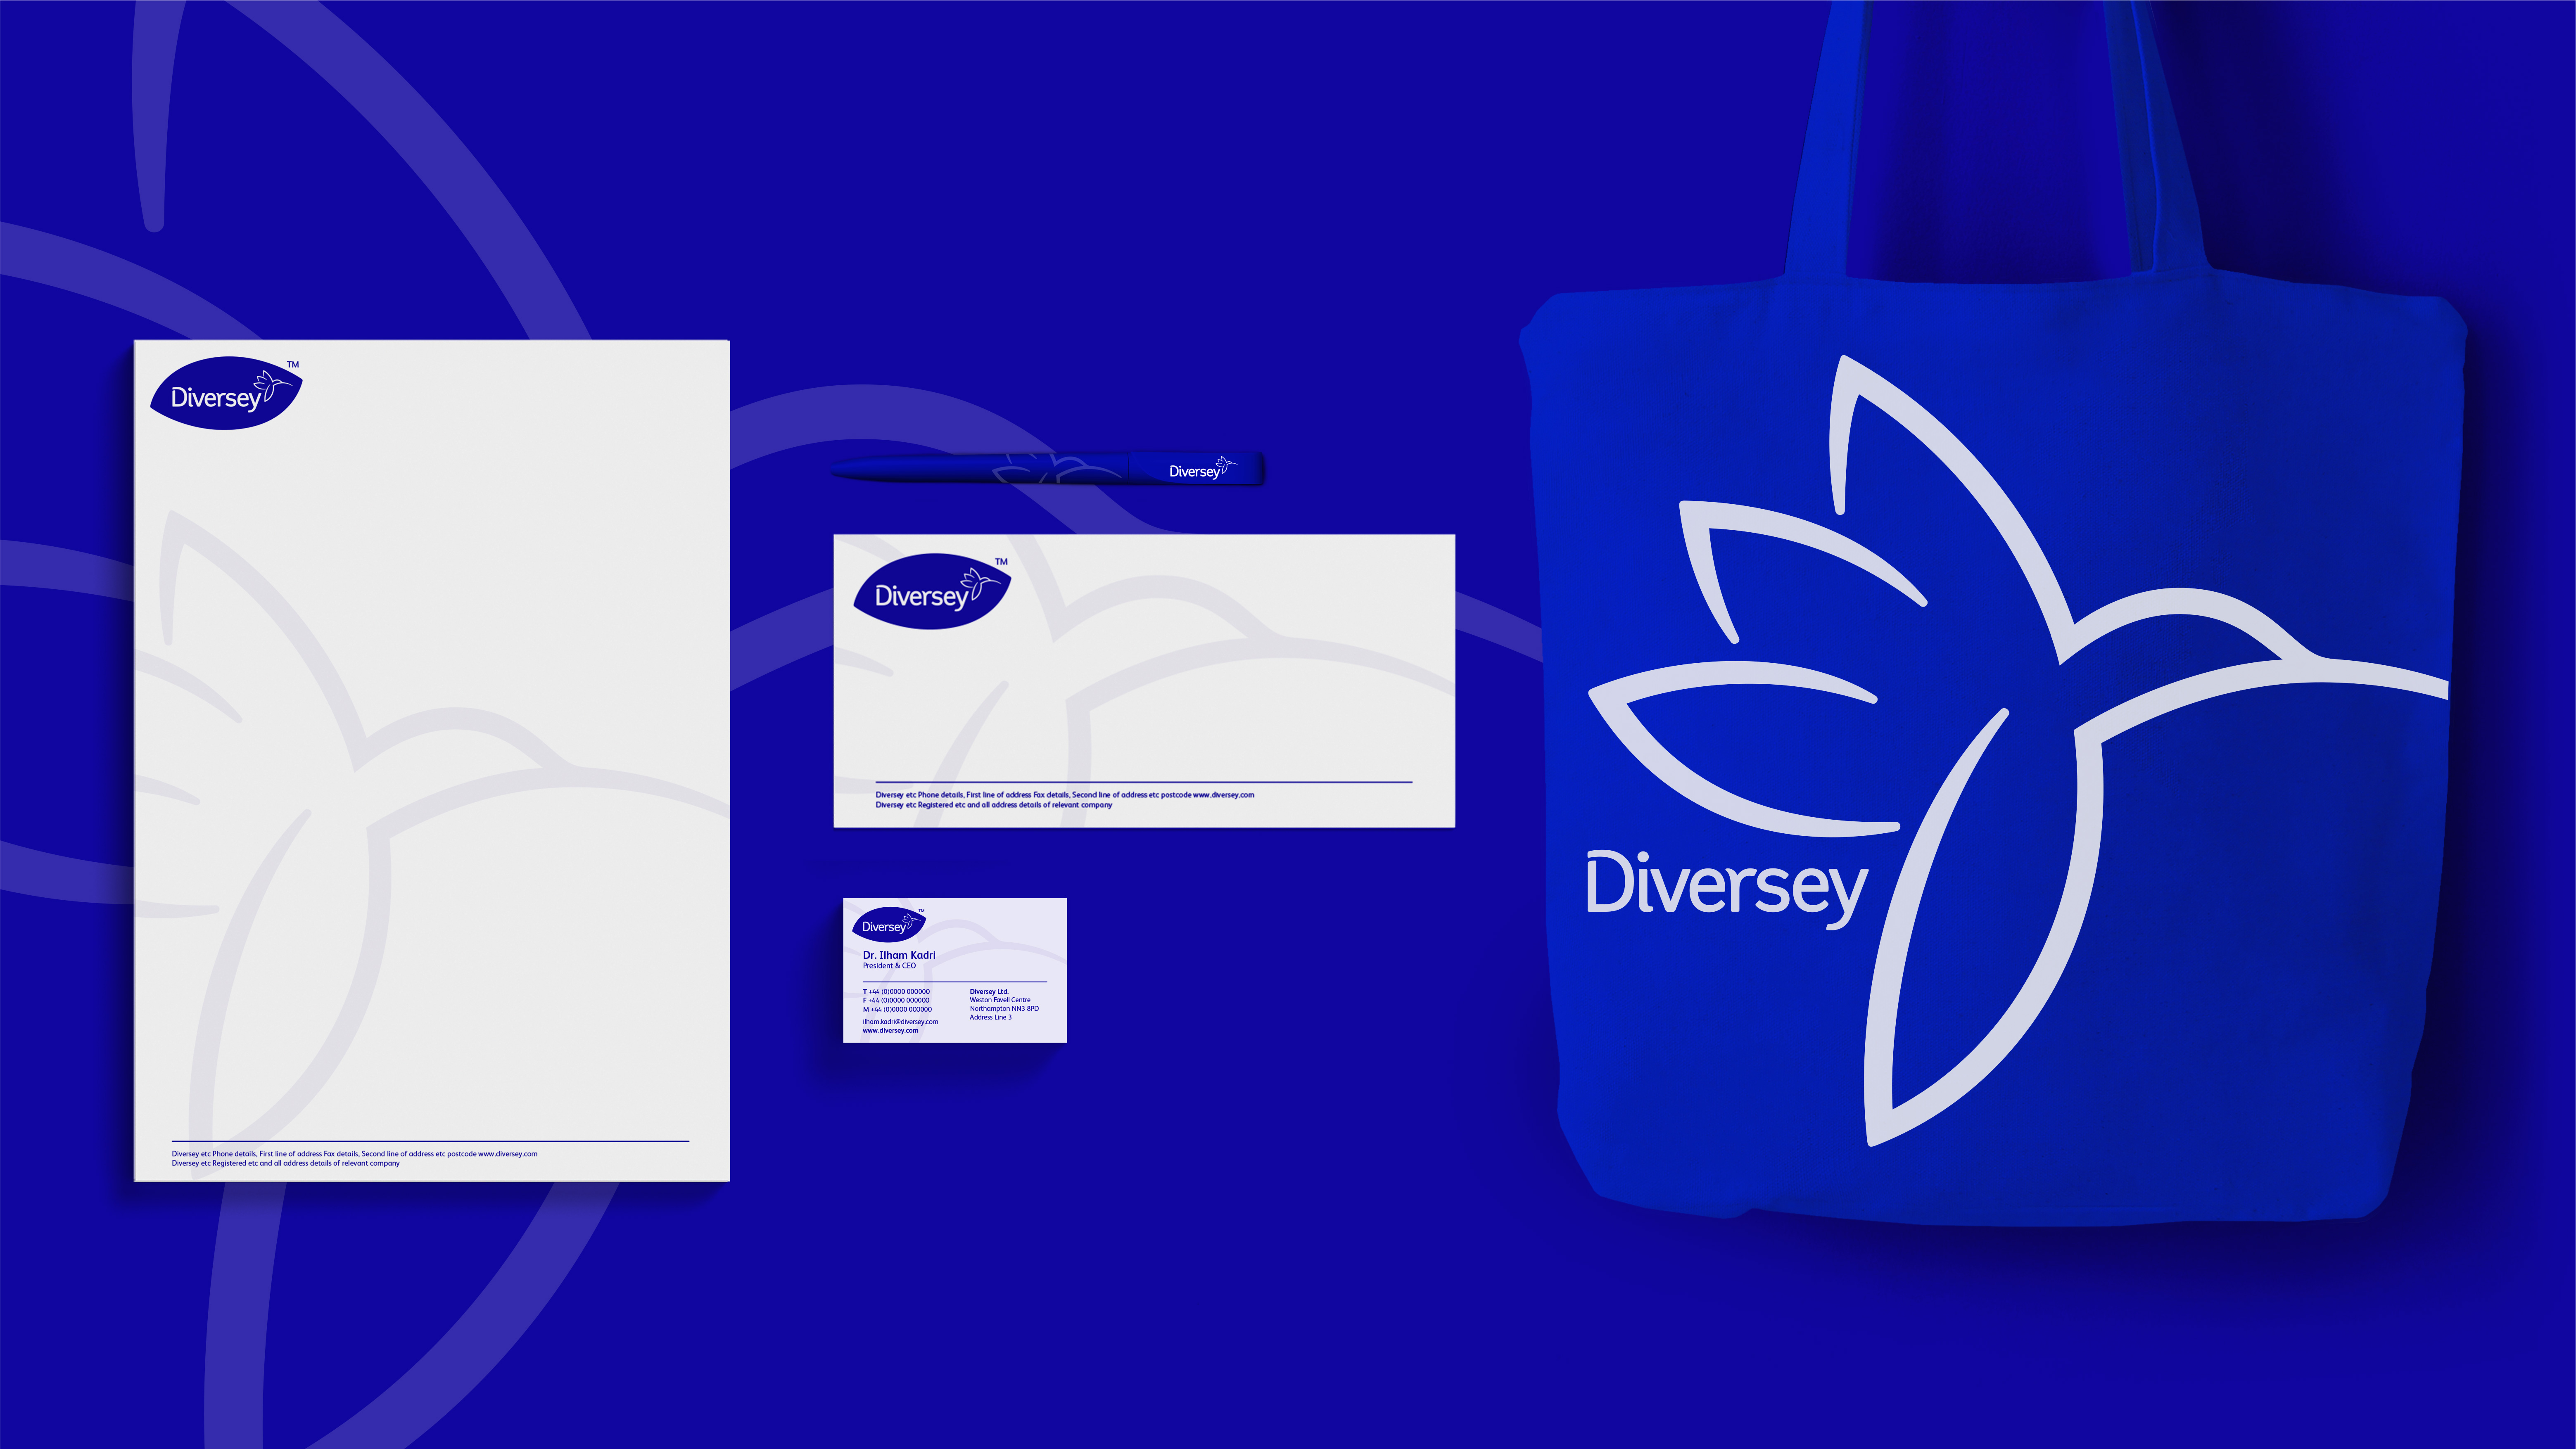 3 Diversey Case Study collateral